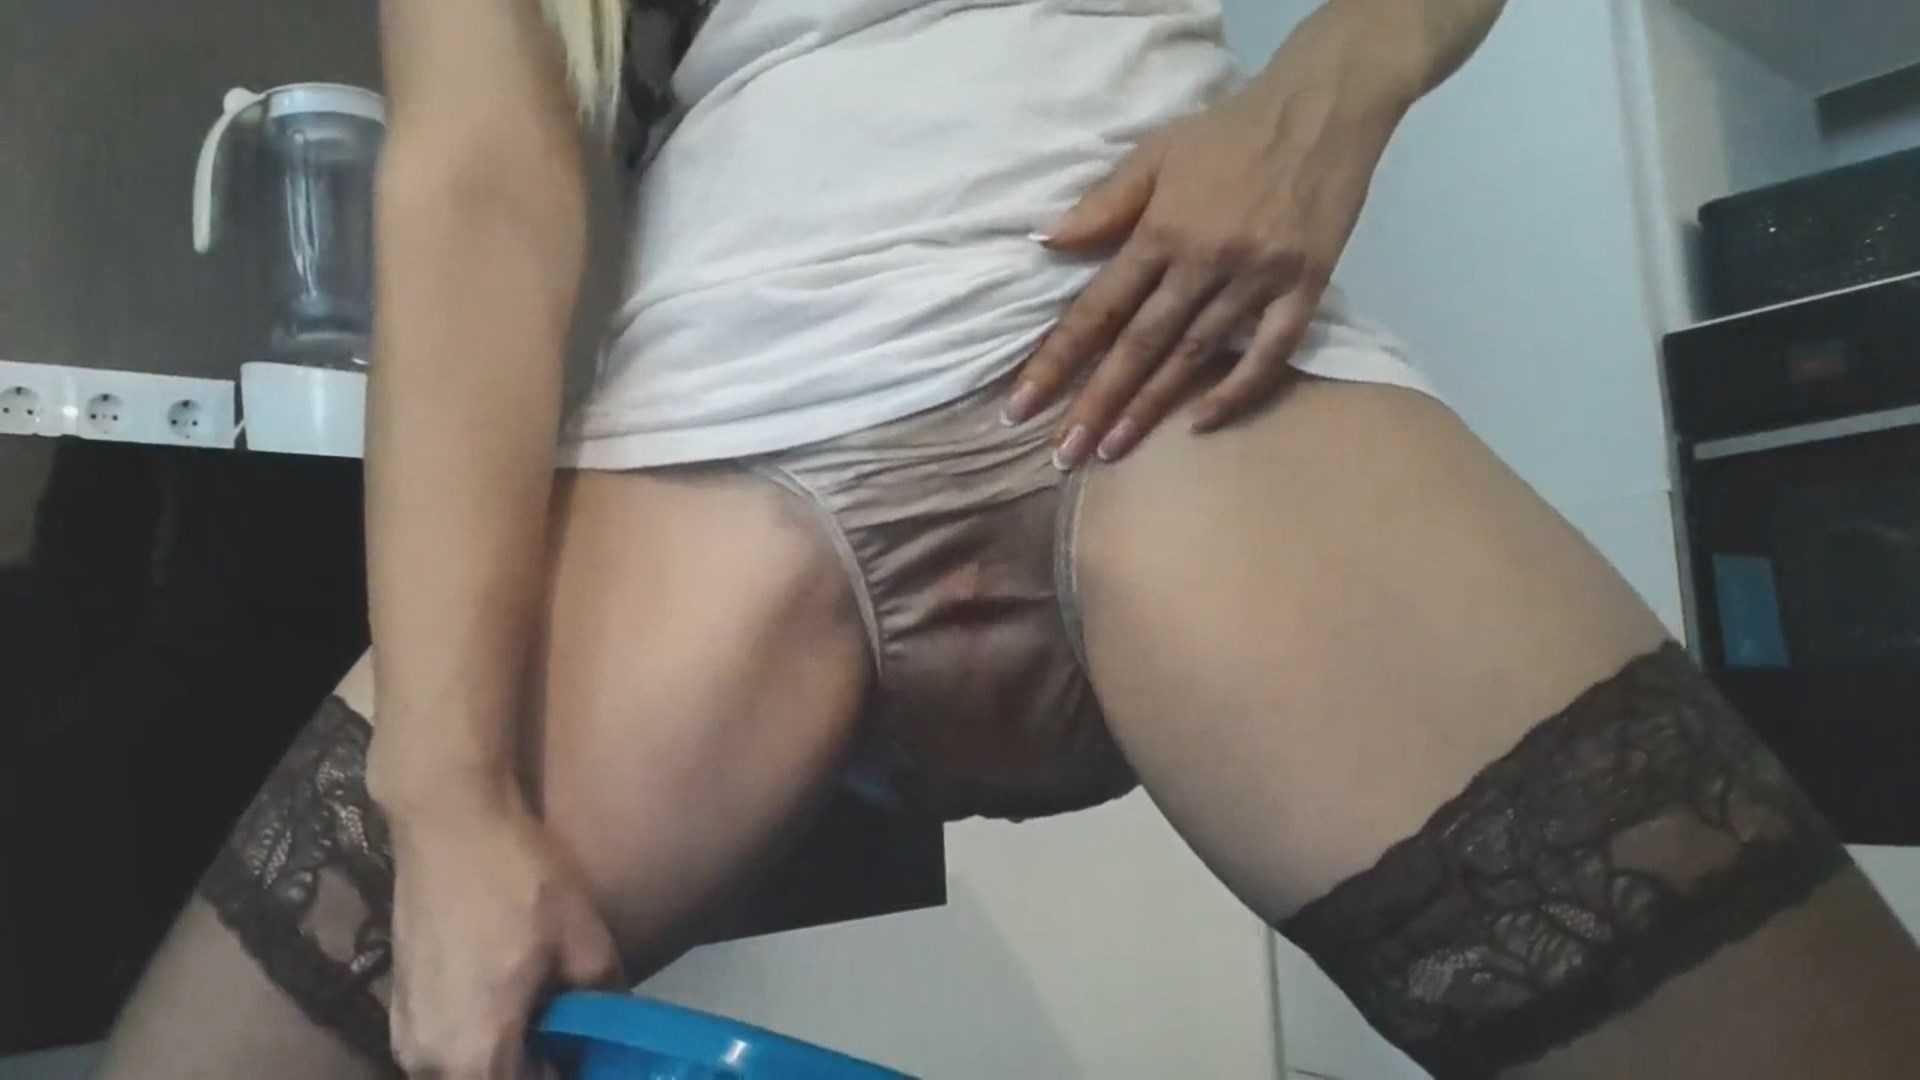 Goddess Sits Panty Shit - panthergodess | FULL HD 1080P | Sep 19, 2017